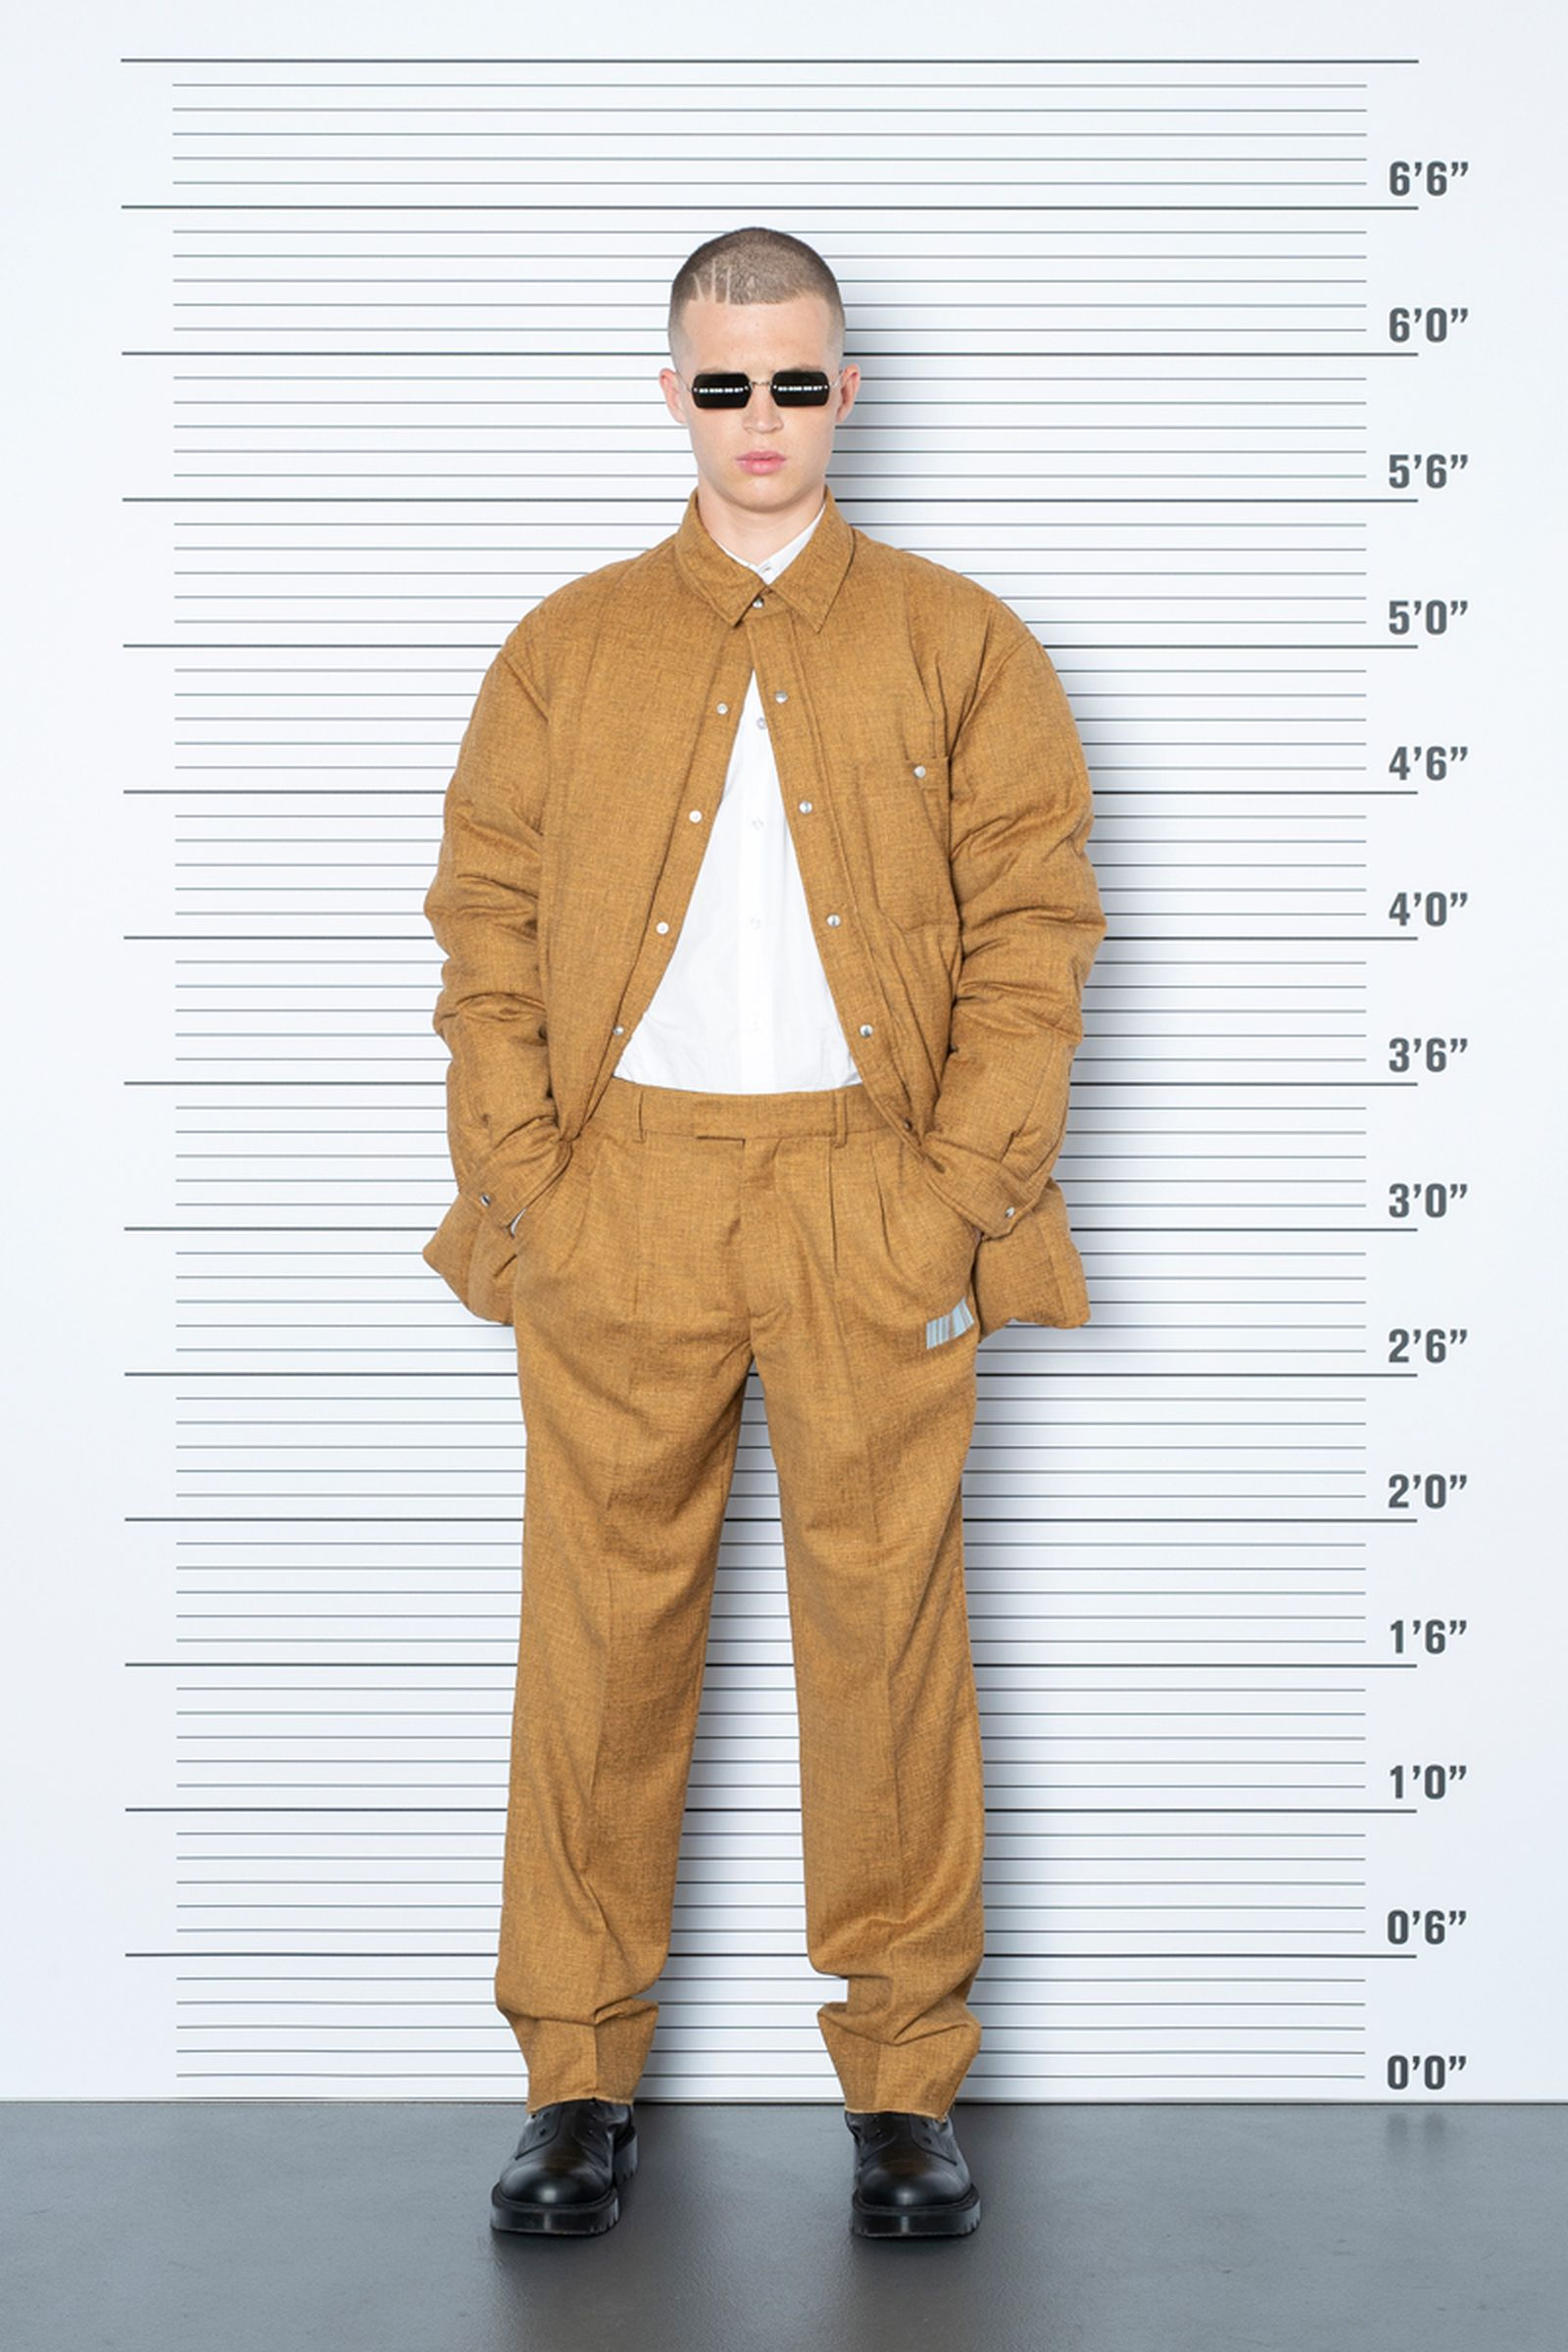 vetements-vtmnts-ss22-collection-lookbook- (87)